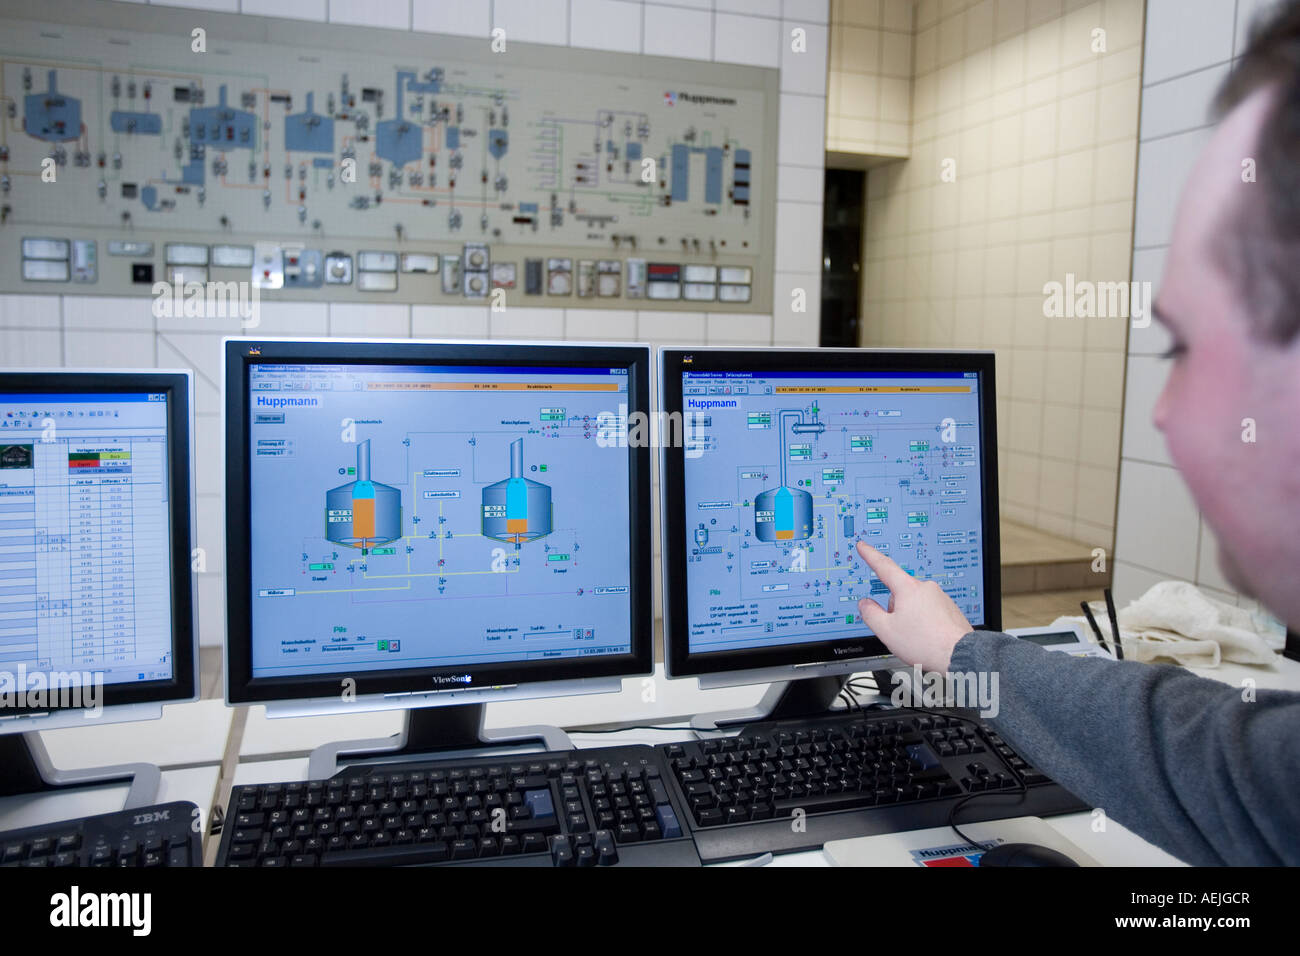 A brewer at the general monitoring of the brewing process of the Pfungstaedter brewery, Hessen, Germany. - Stock Image